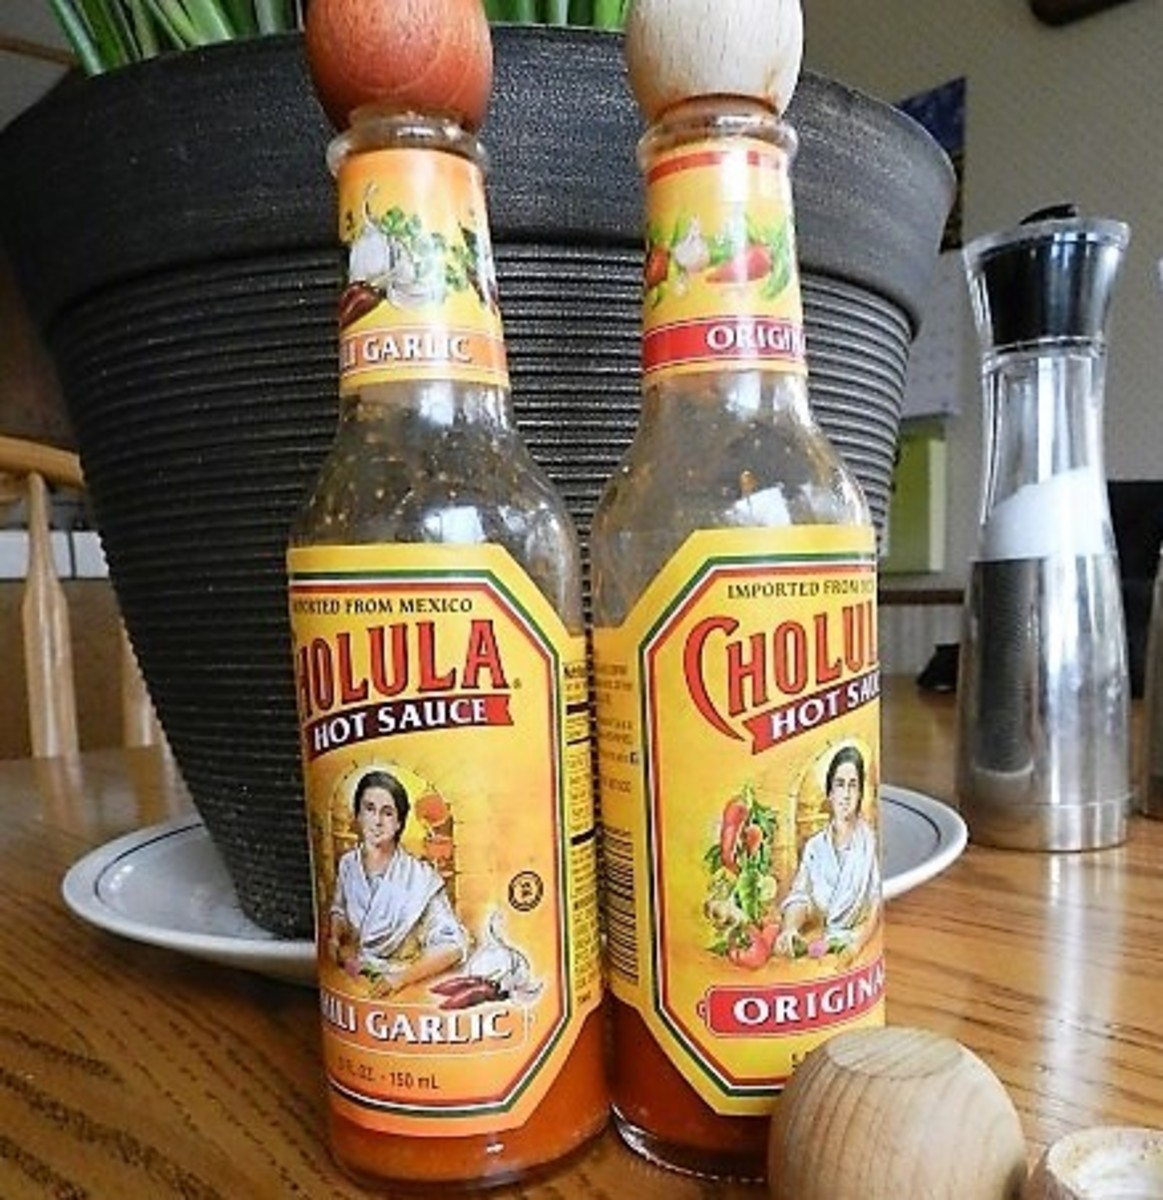 Cholula Hot Sauce and Its Wonderful Flavors